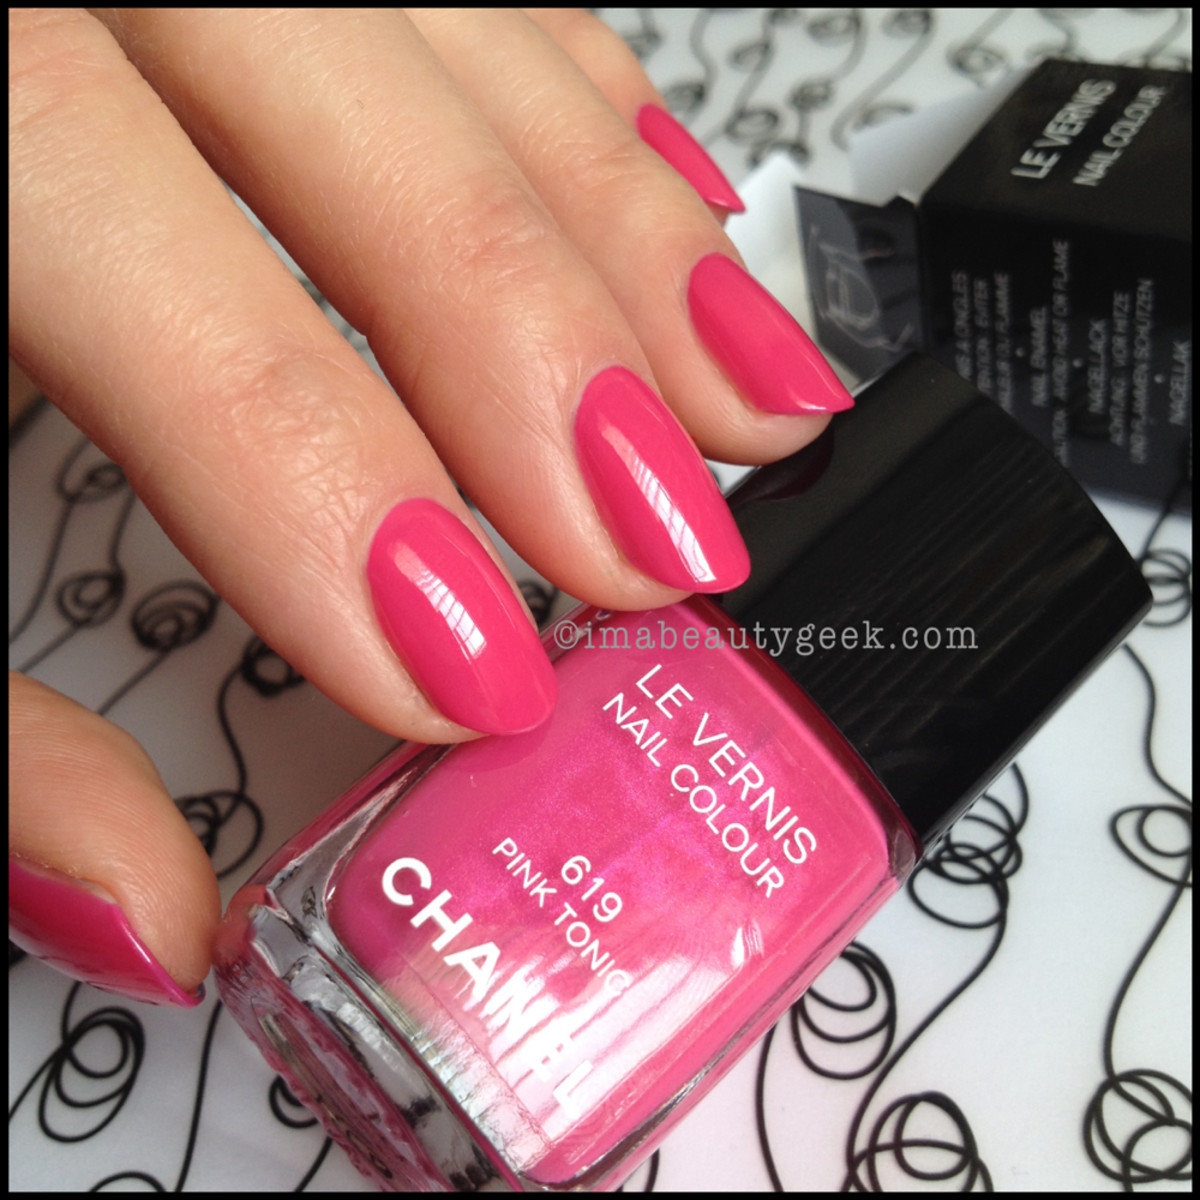 Chanel Summer 2014 Pink Tonic 619